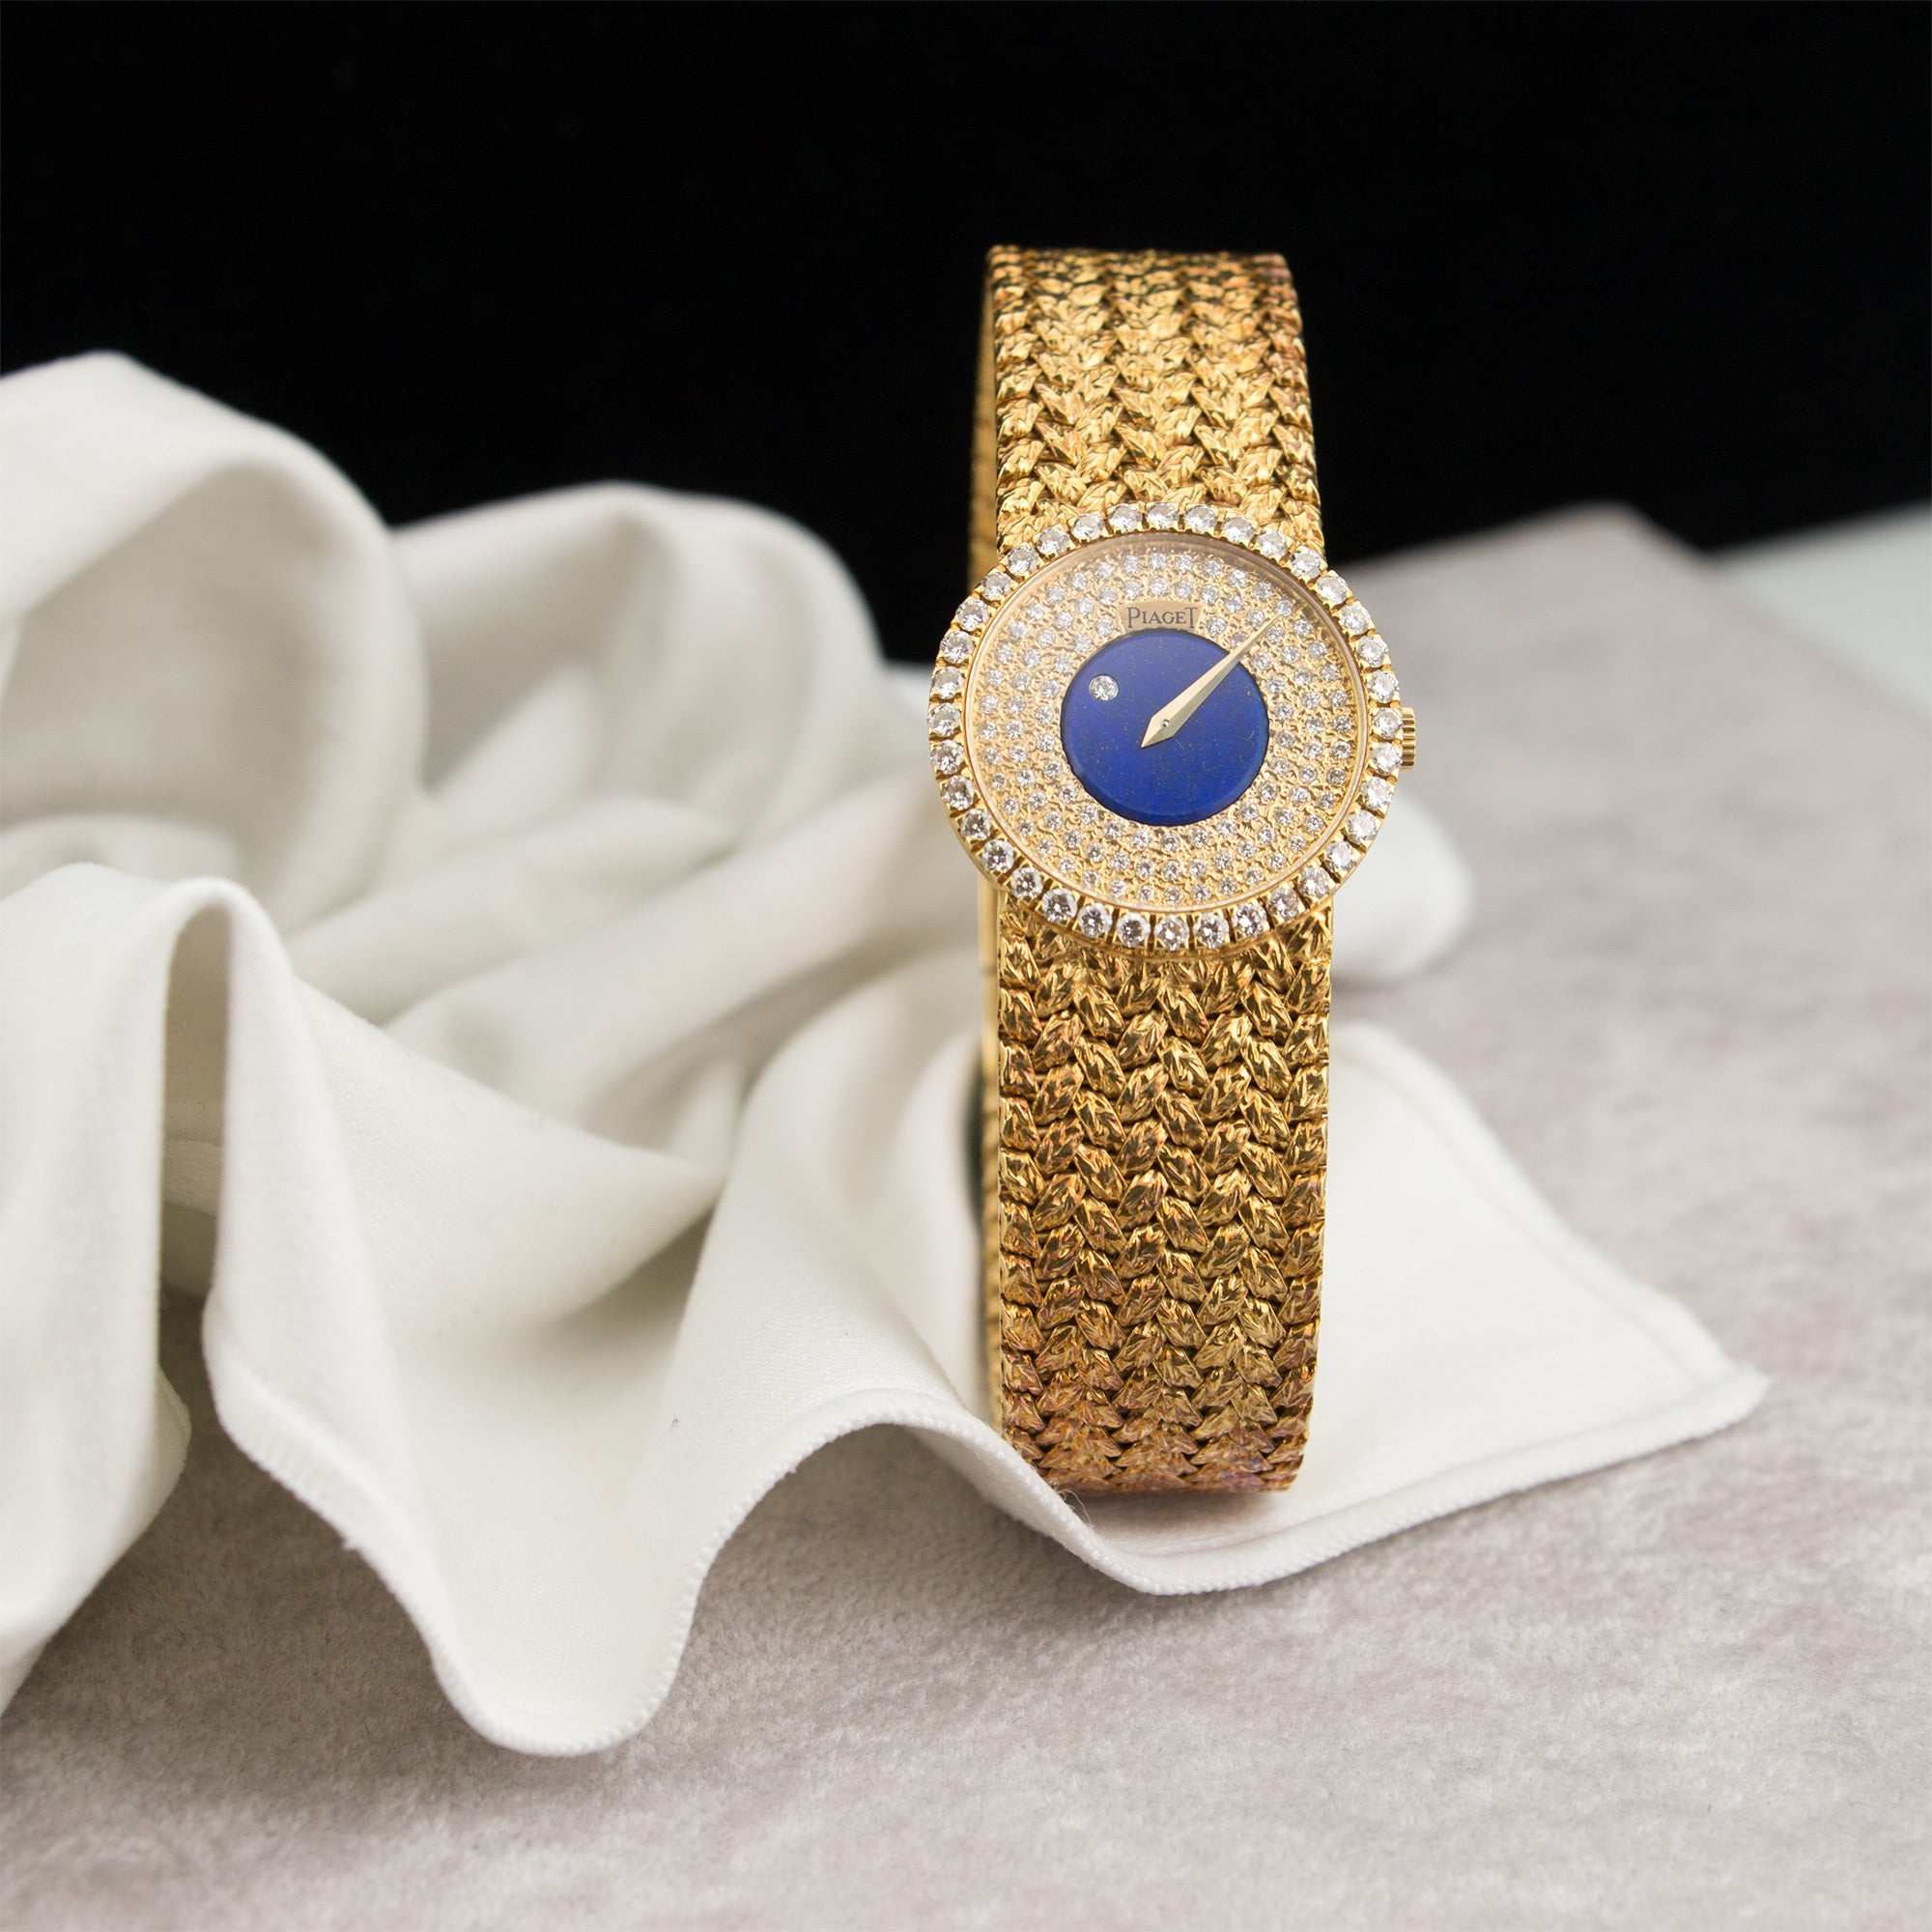 Piaget Vintage 9706 18k YG  Excellent Ladies 18k YG Diamond and Lapis Lazuli 26mm Manual 1970s Yellow Gold (172mm) N/A